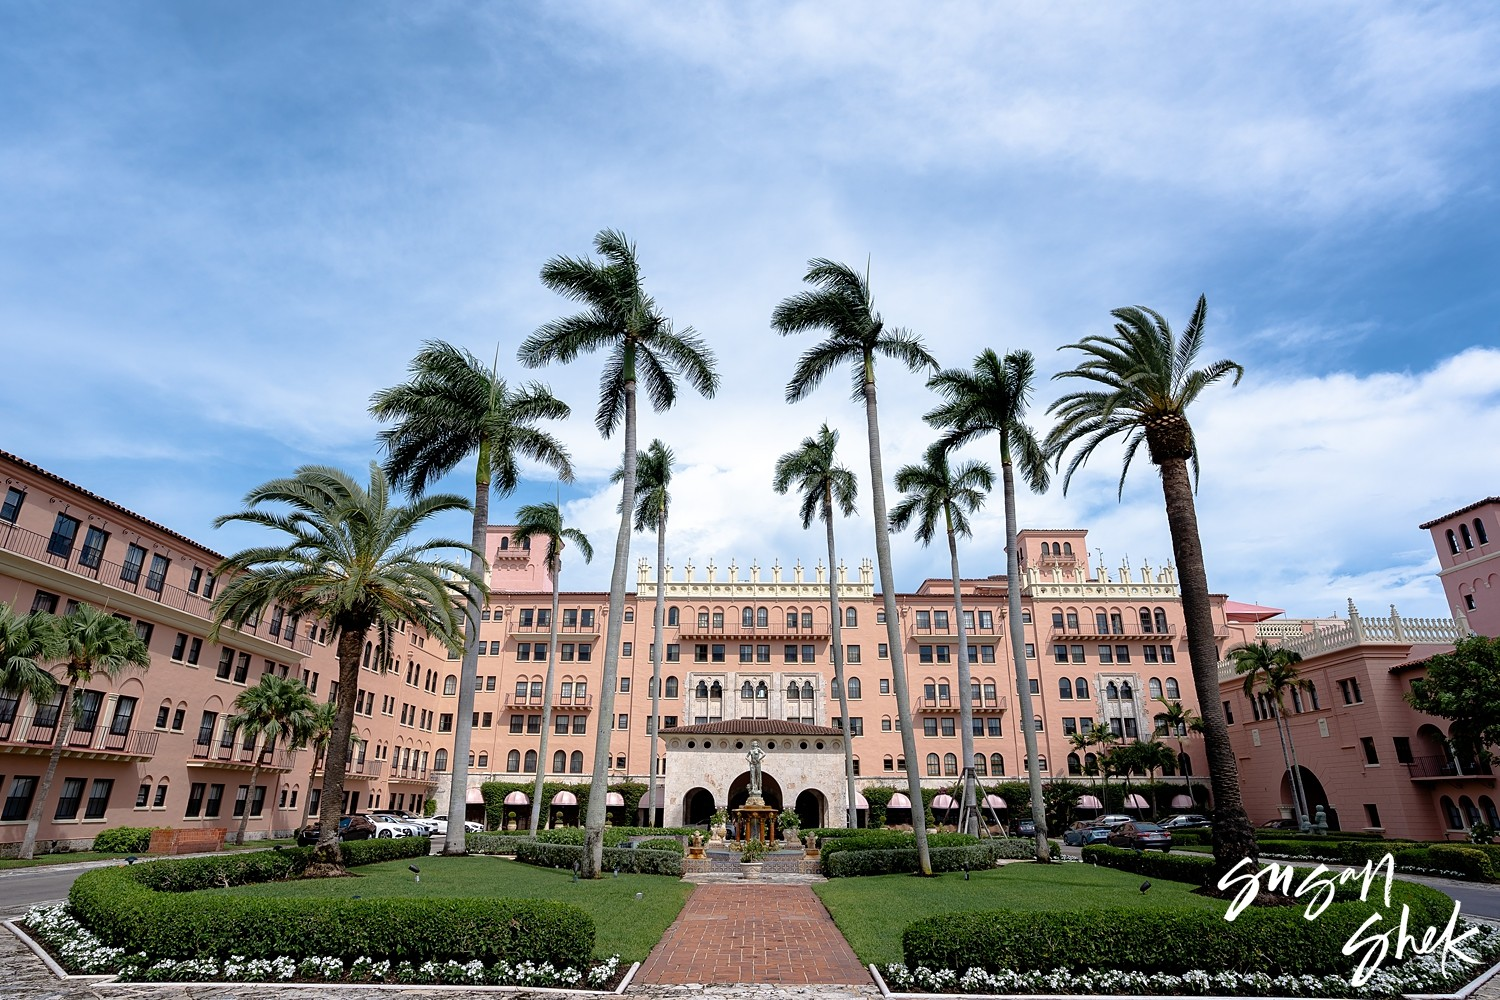 Boca Raton Resort Wedding